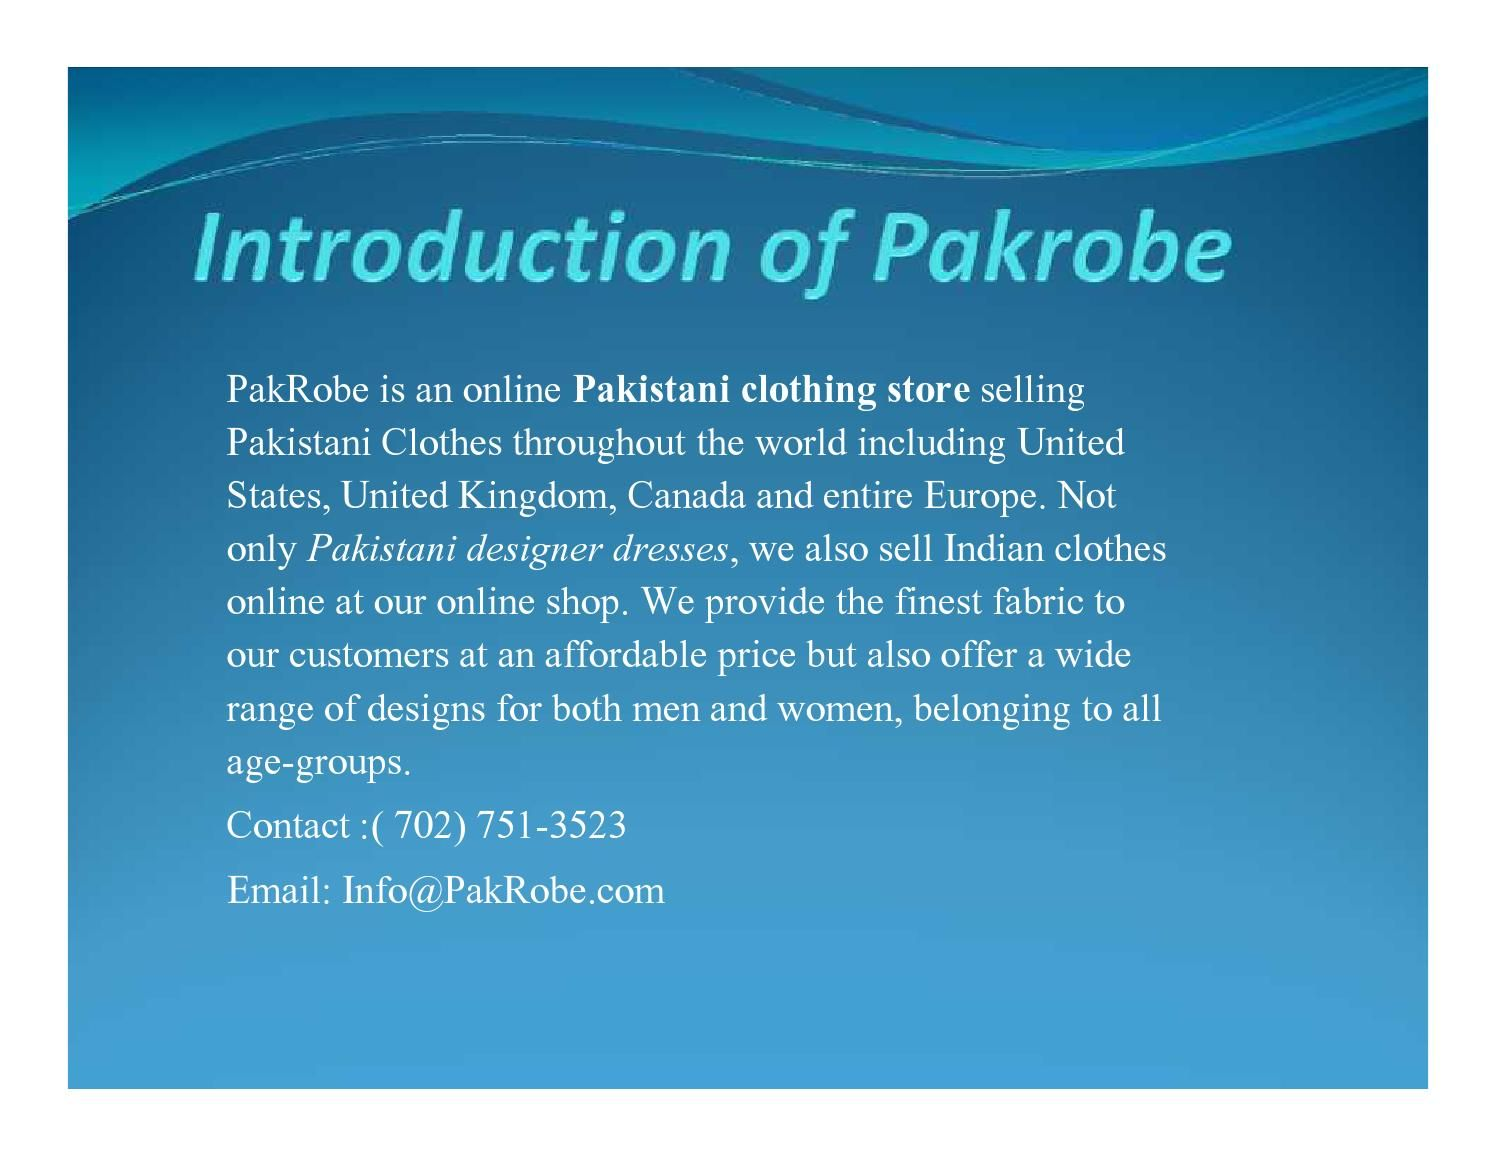 Buy Pakistani Wedding, Mehndi & Reception Dresses online at Pak Robe. Checkout our complete range of Bridal Dresses with Amazing Discounts & Free Shipping Offers. Contact :( 702) 751-3523    Email: Info@PakRobe.com